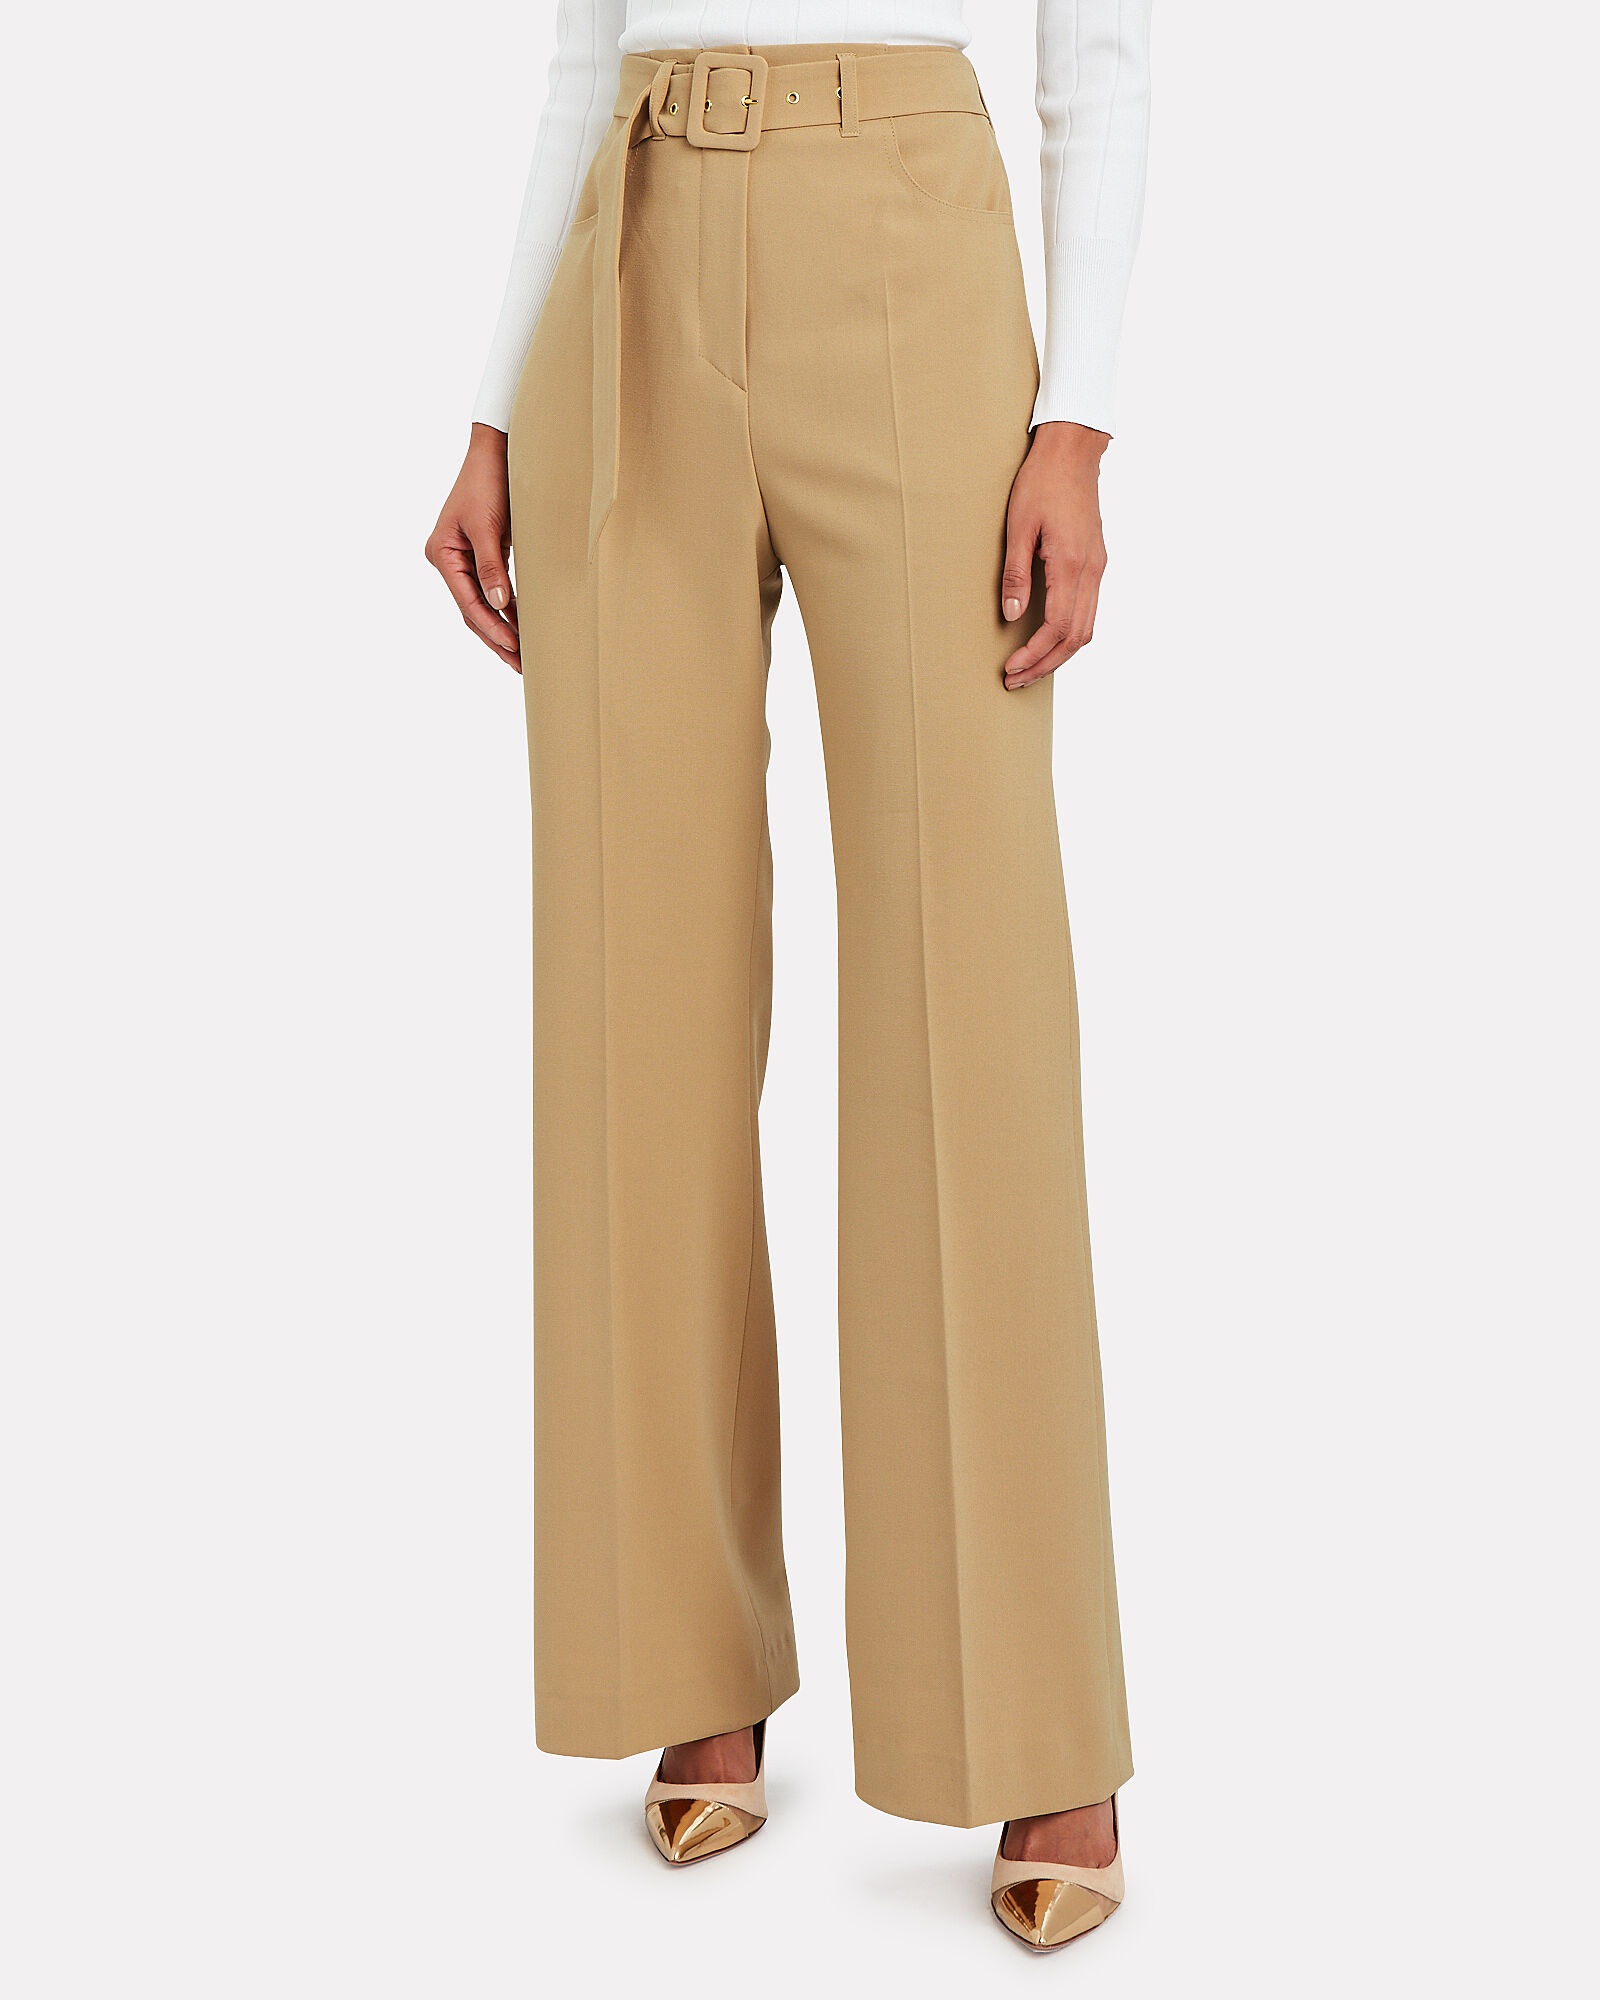 Clara Belted High-Rise Trousers, BEIGE, hi-res